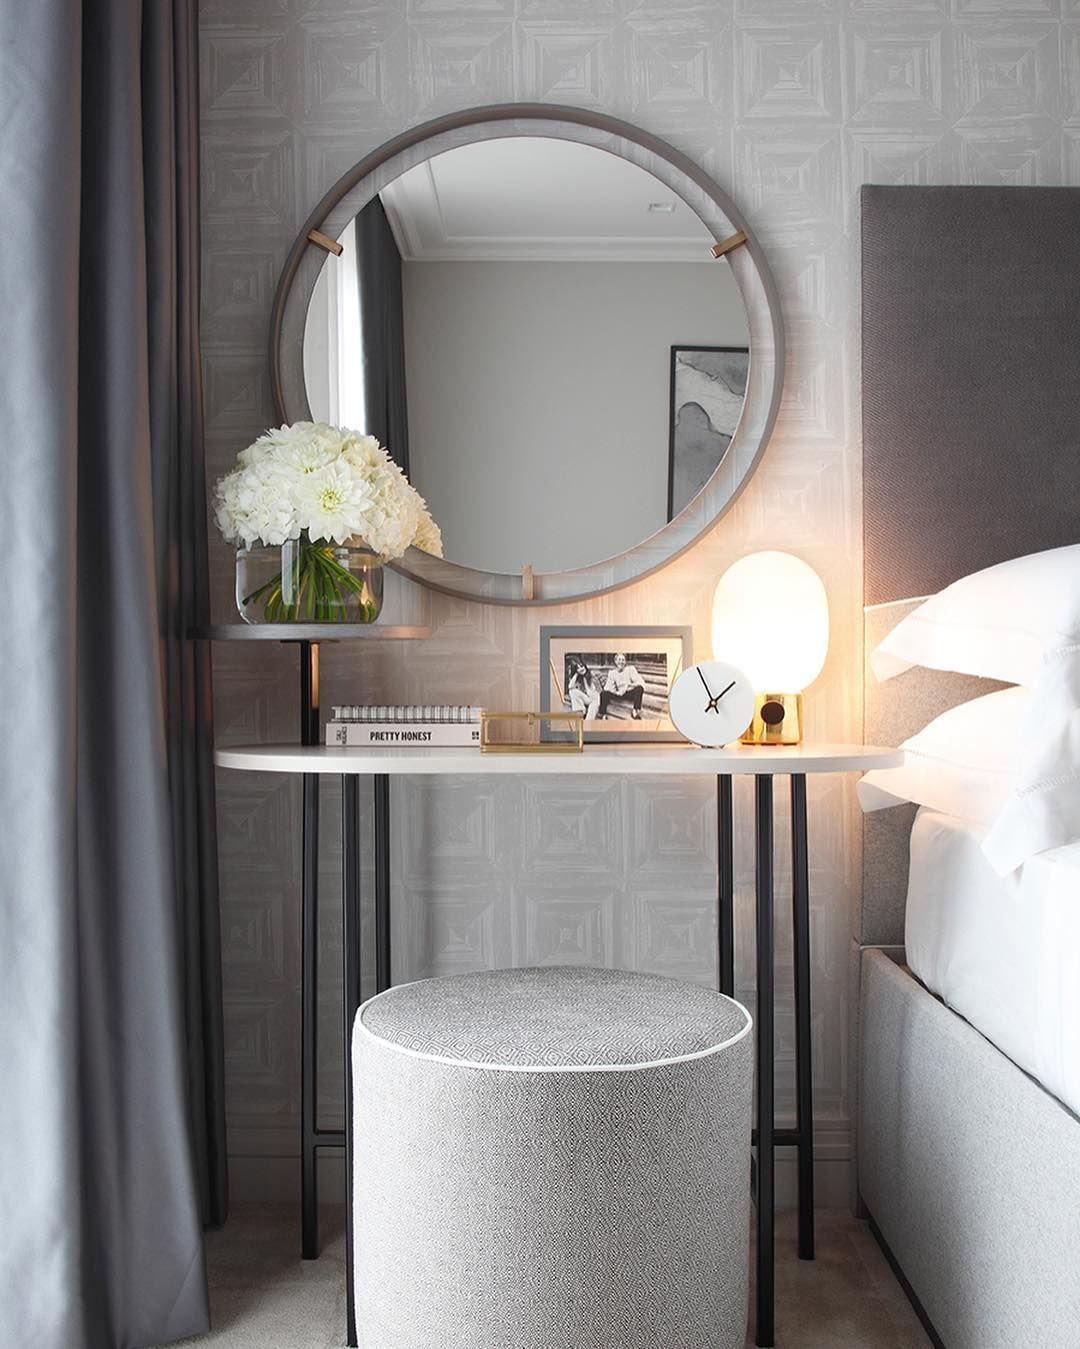 Dressing table area at our recently photographed master bedroom